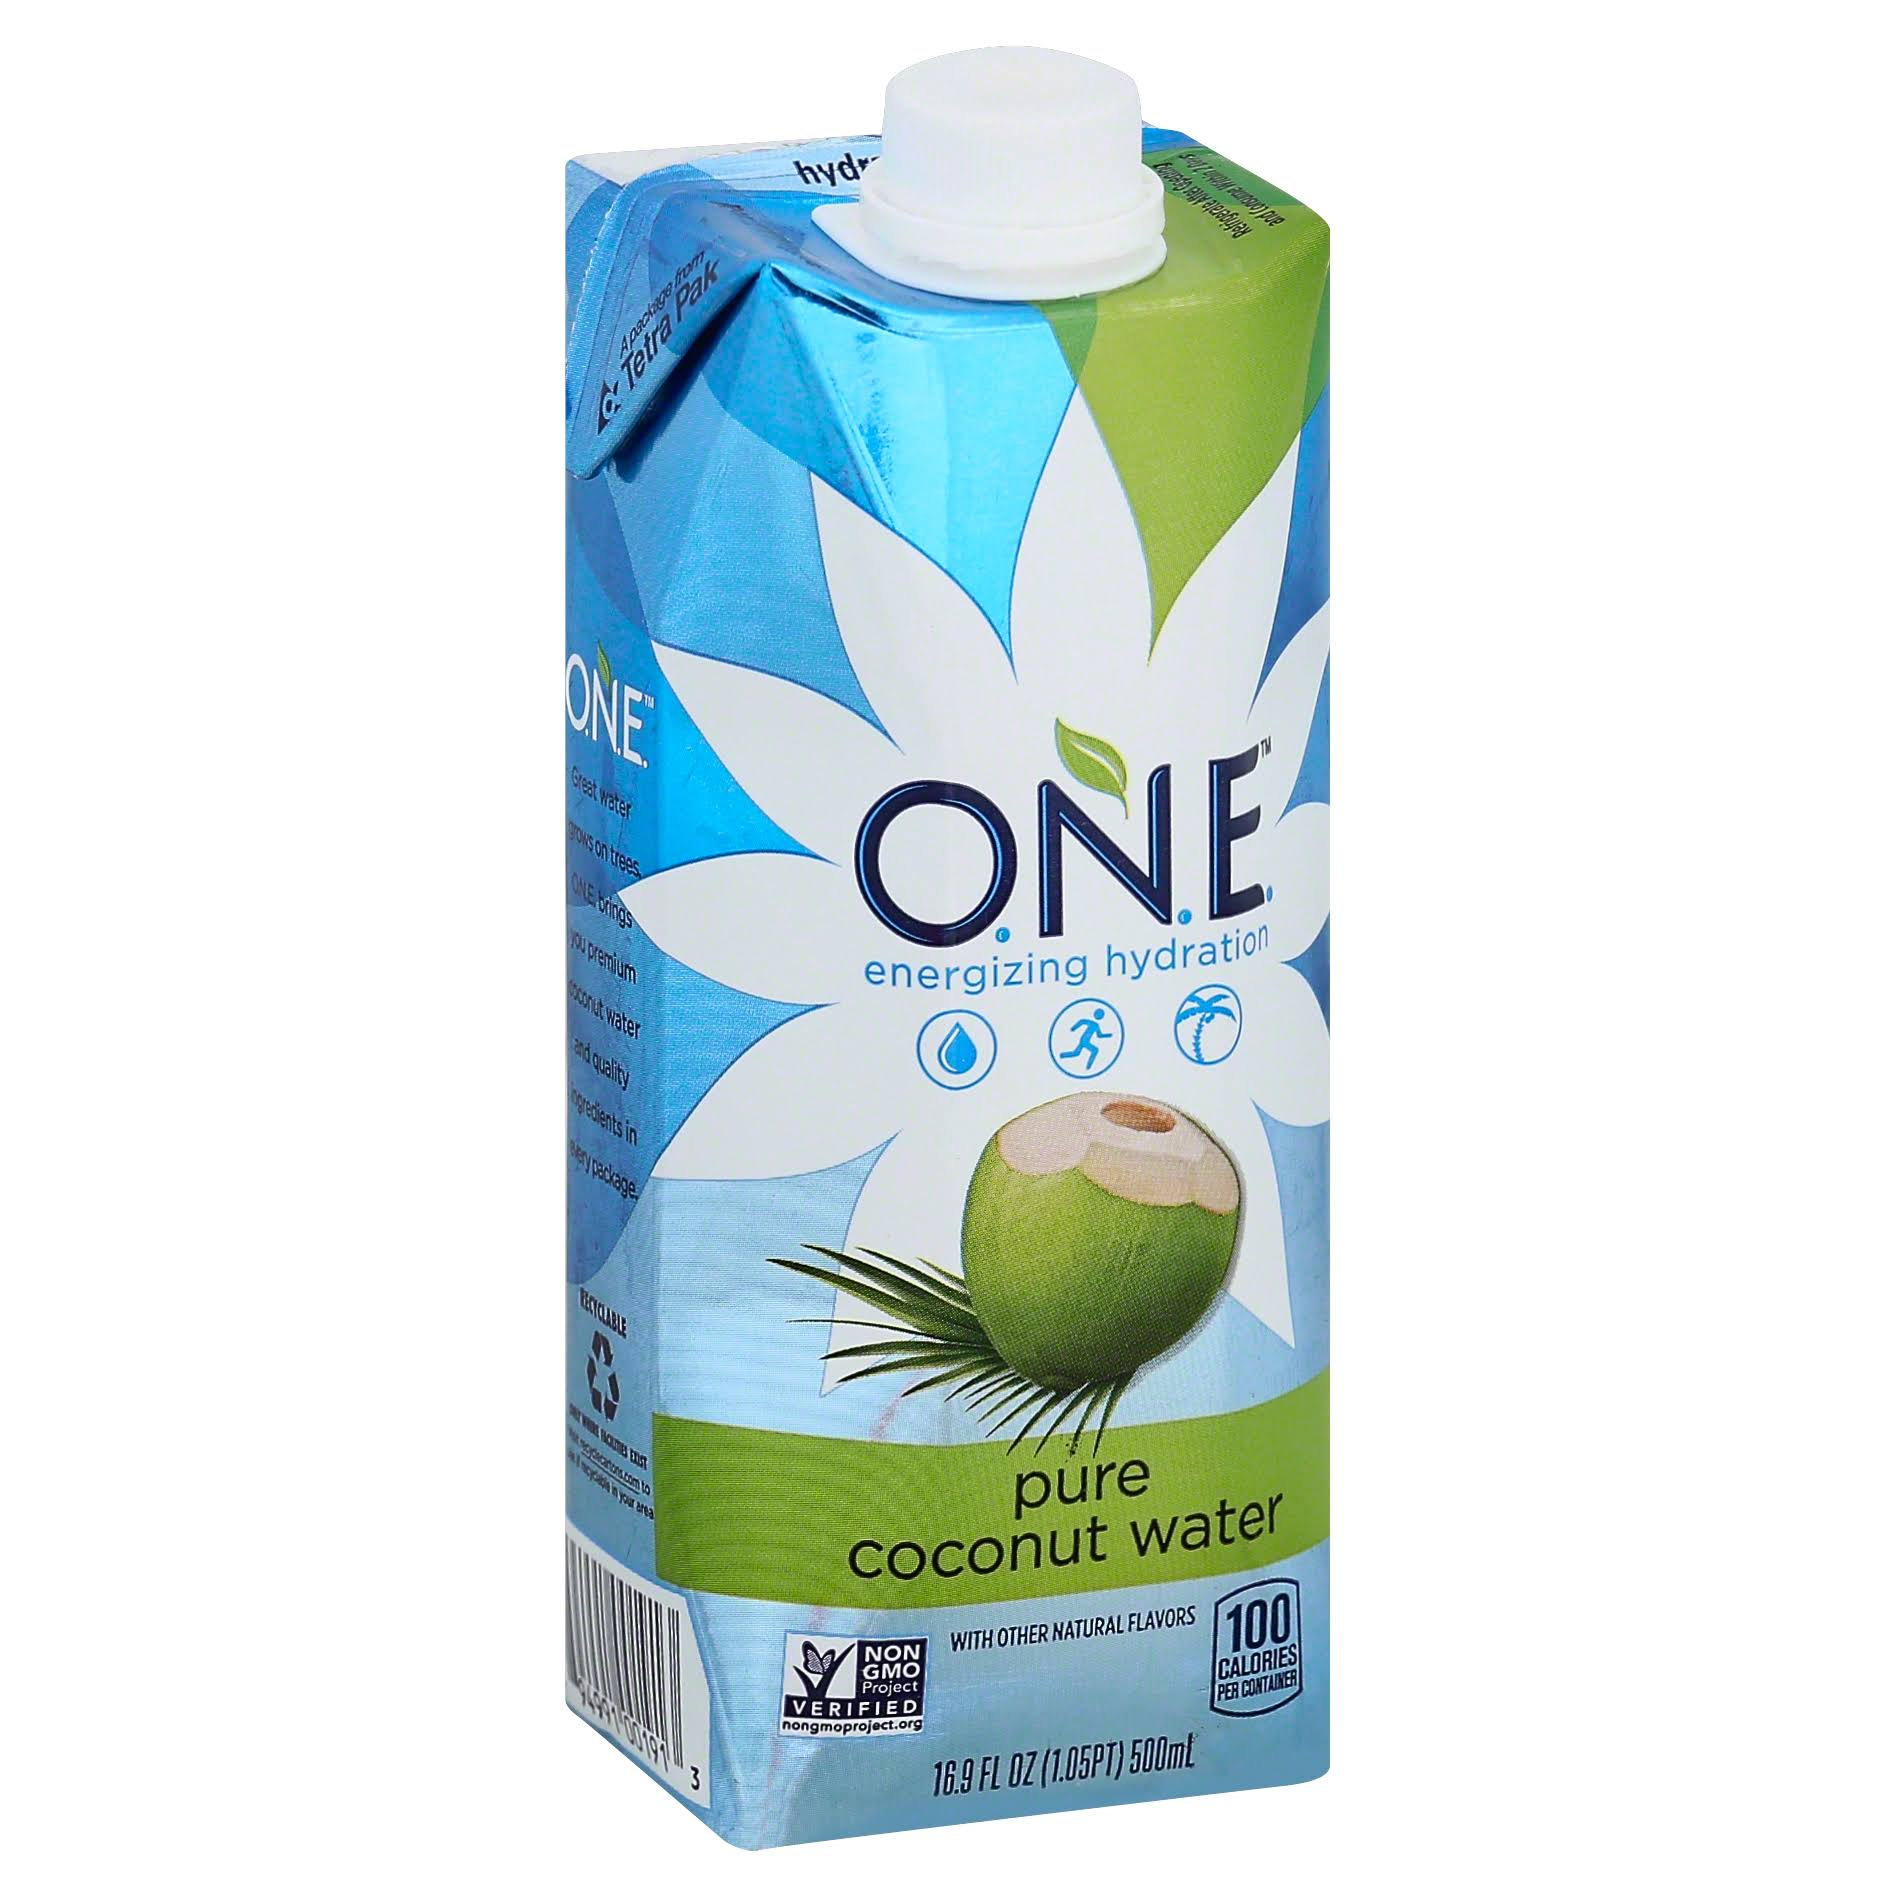 O.N.E. Pure Coconut Water - 12 Pack